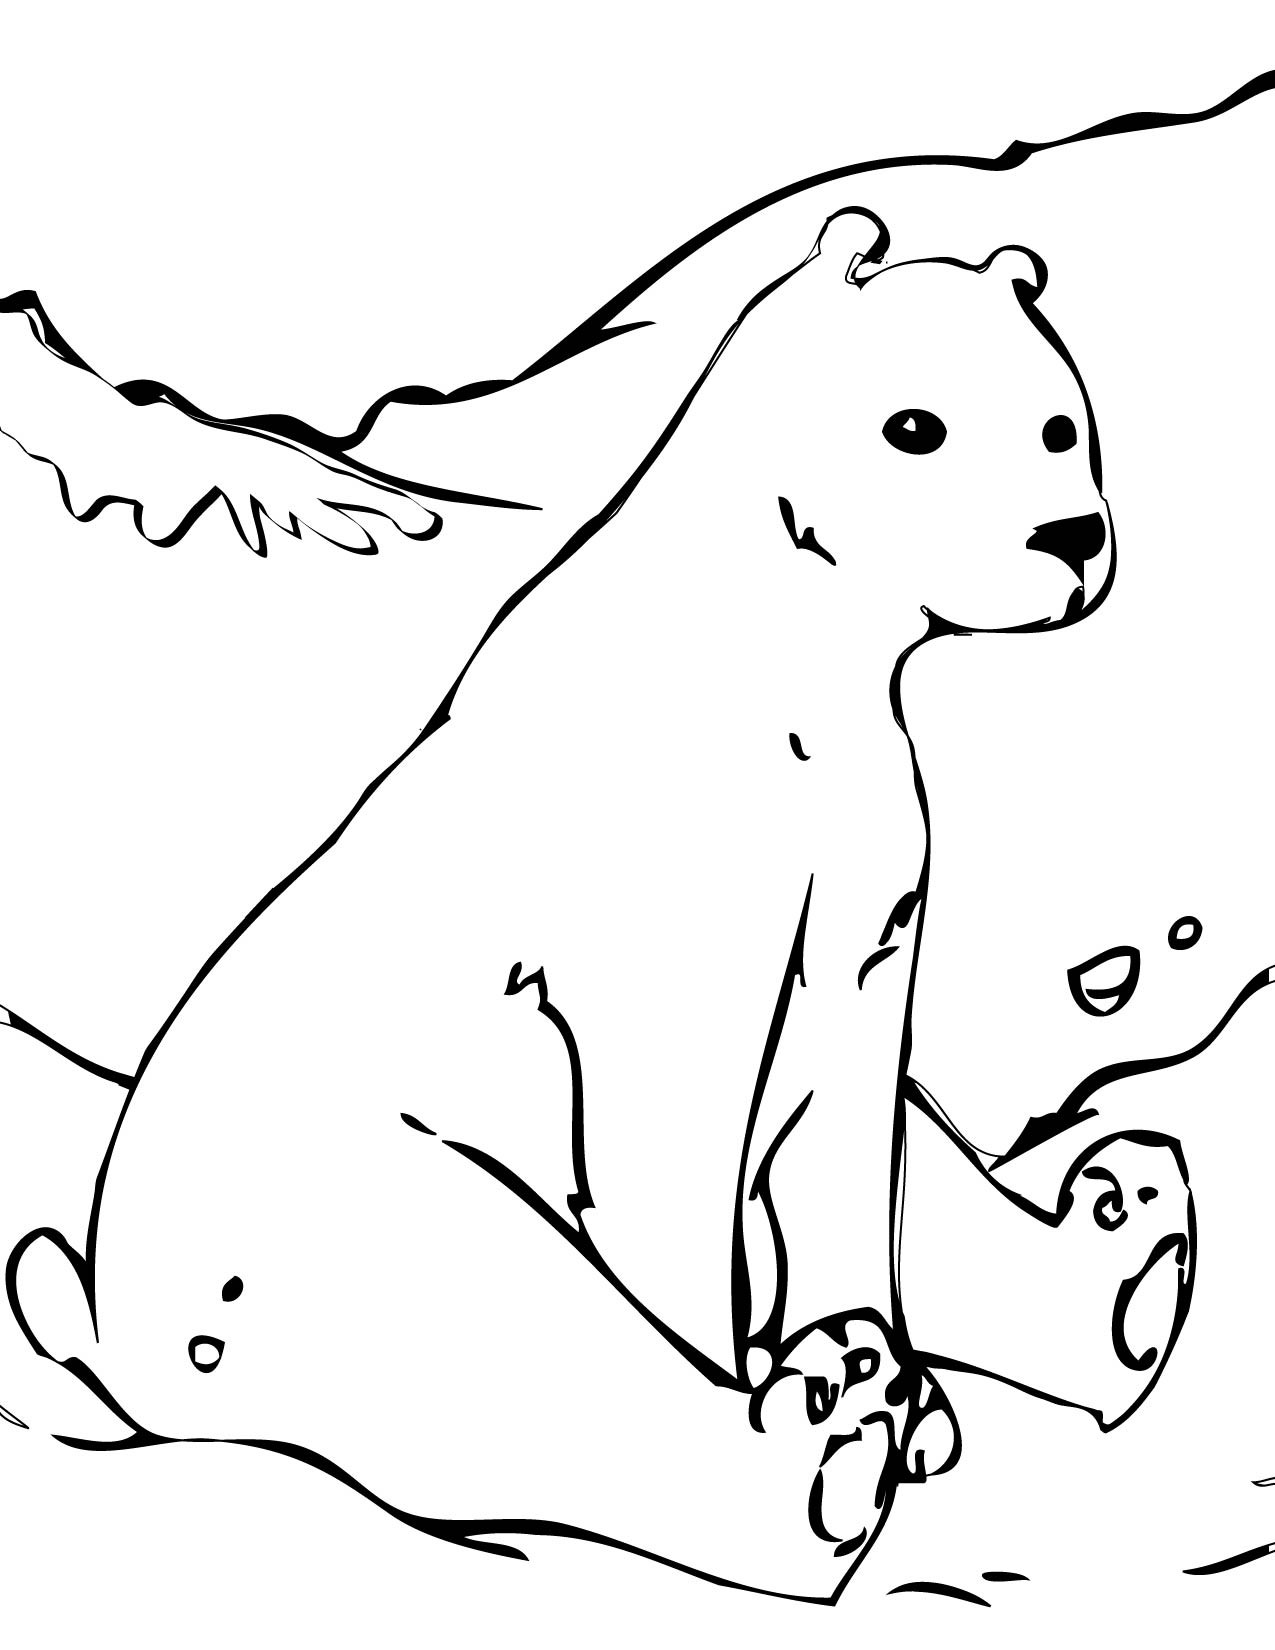 Free Coloring Pages Of Polar Bears  Free Printable Polar Bear Coloring Pages For Kids